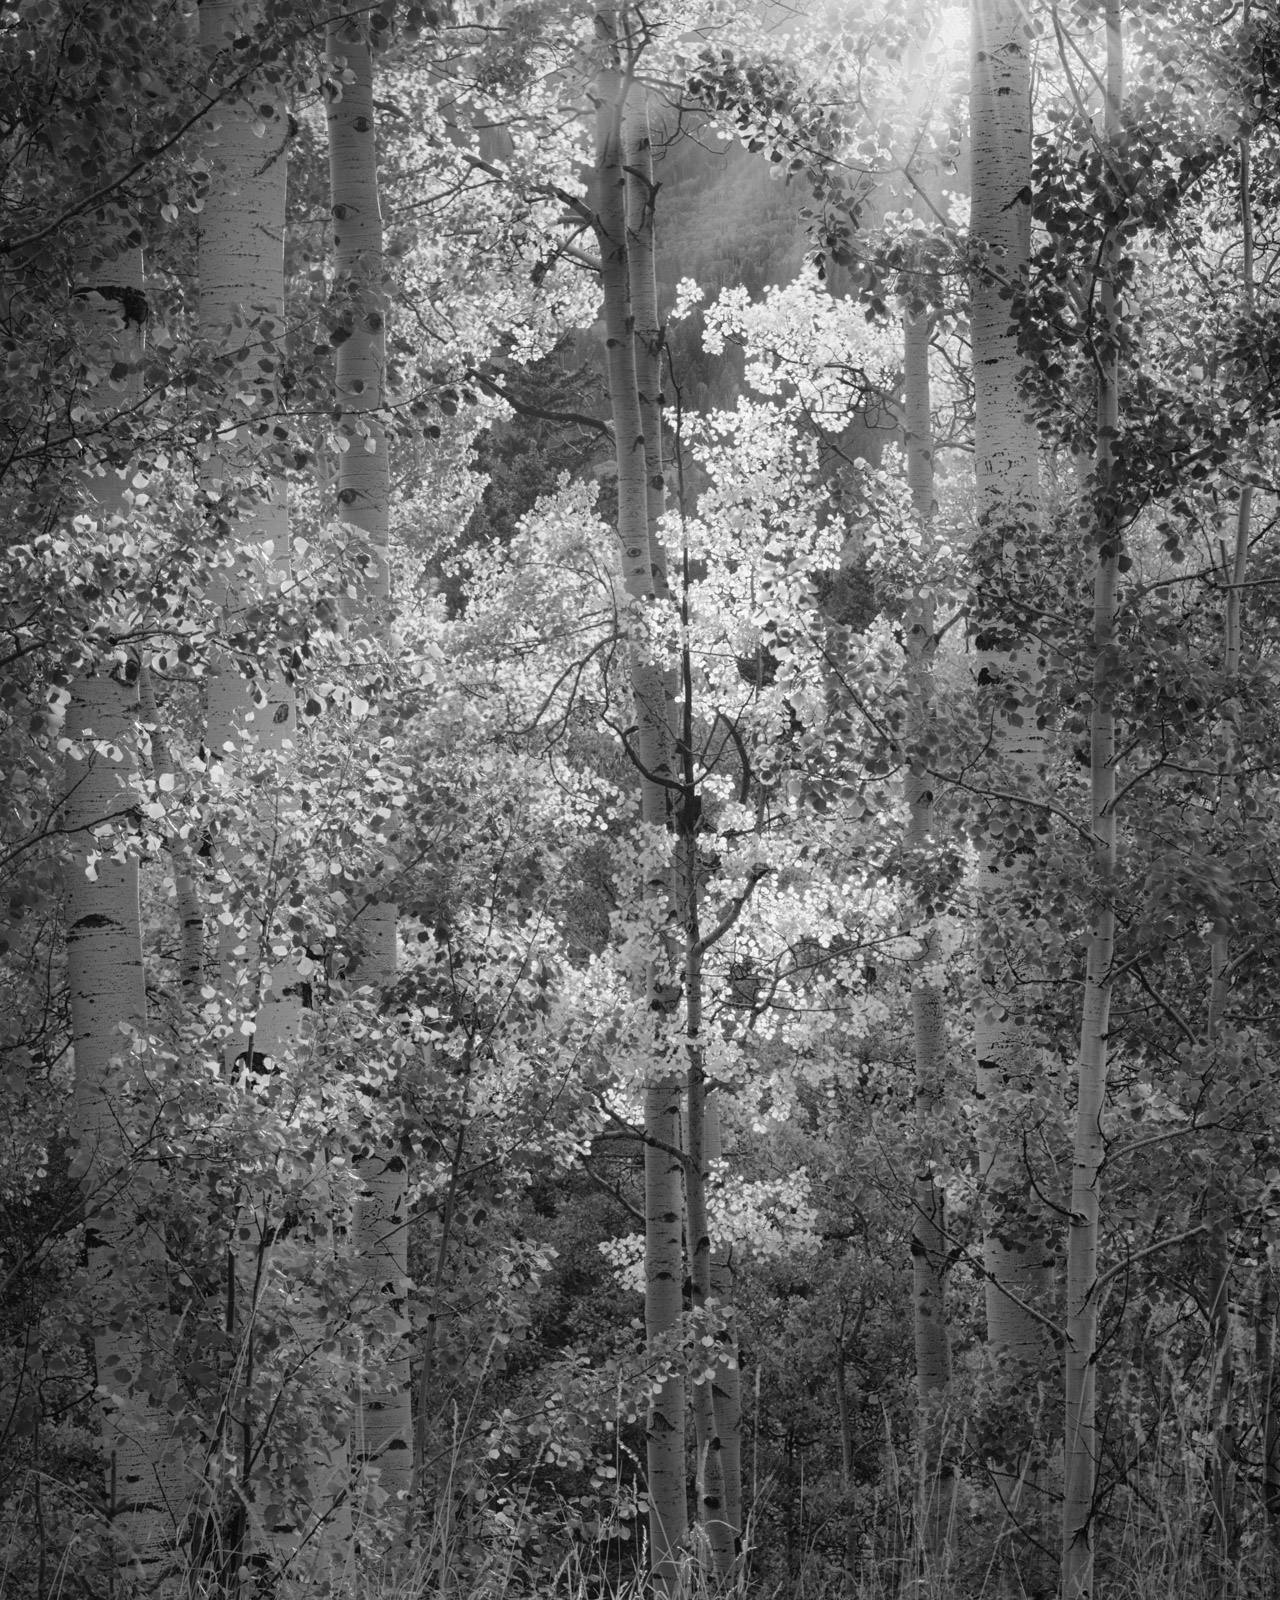 Afternoon sunlight spills through this glade of Aspens near Silver Jack Reseviour.